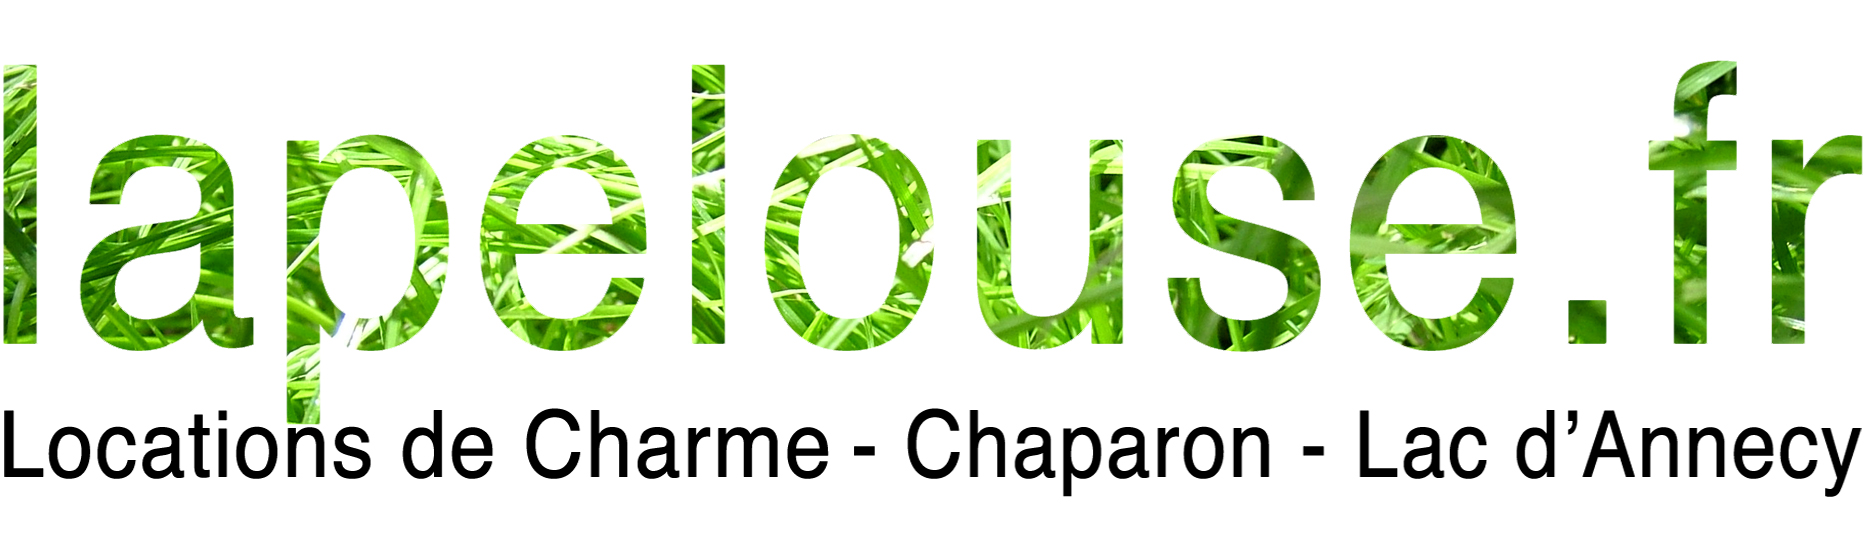 La Pelouse, locations de charme, lac d'Annecy, chalet et appartements